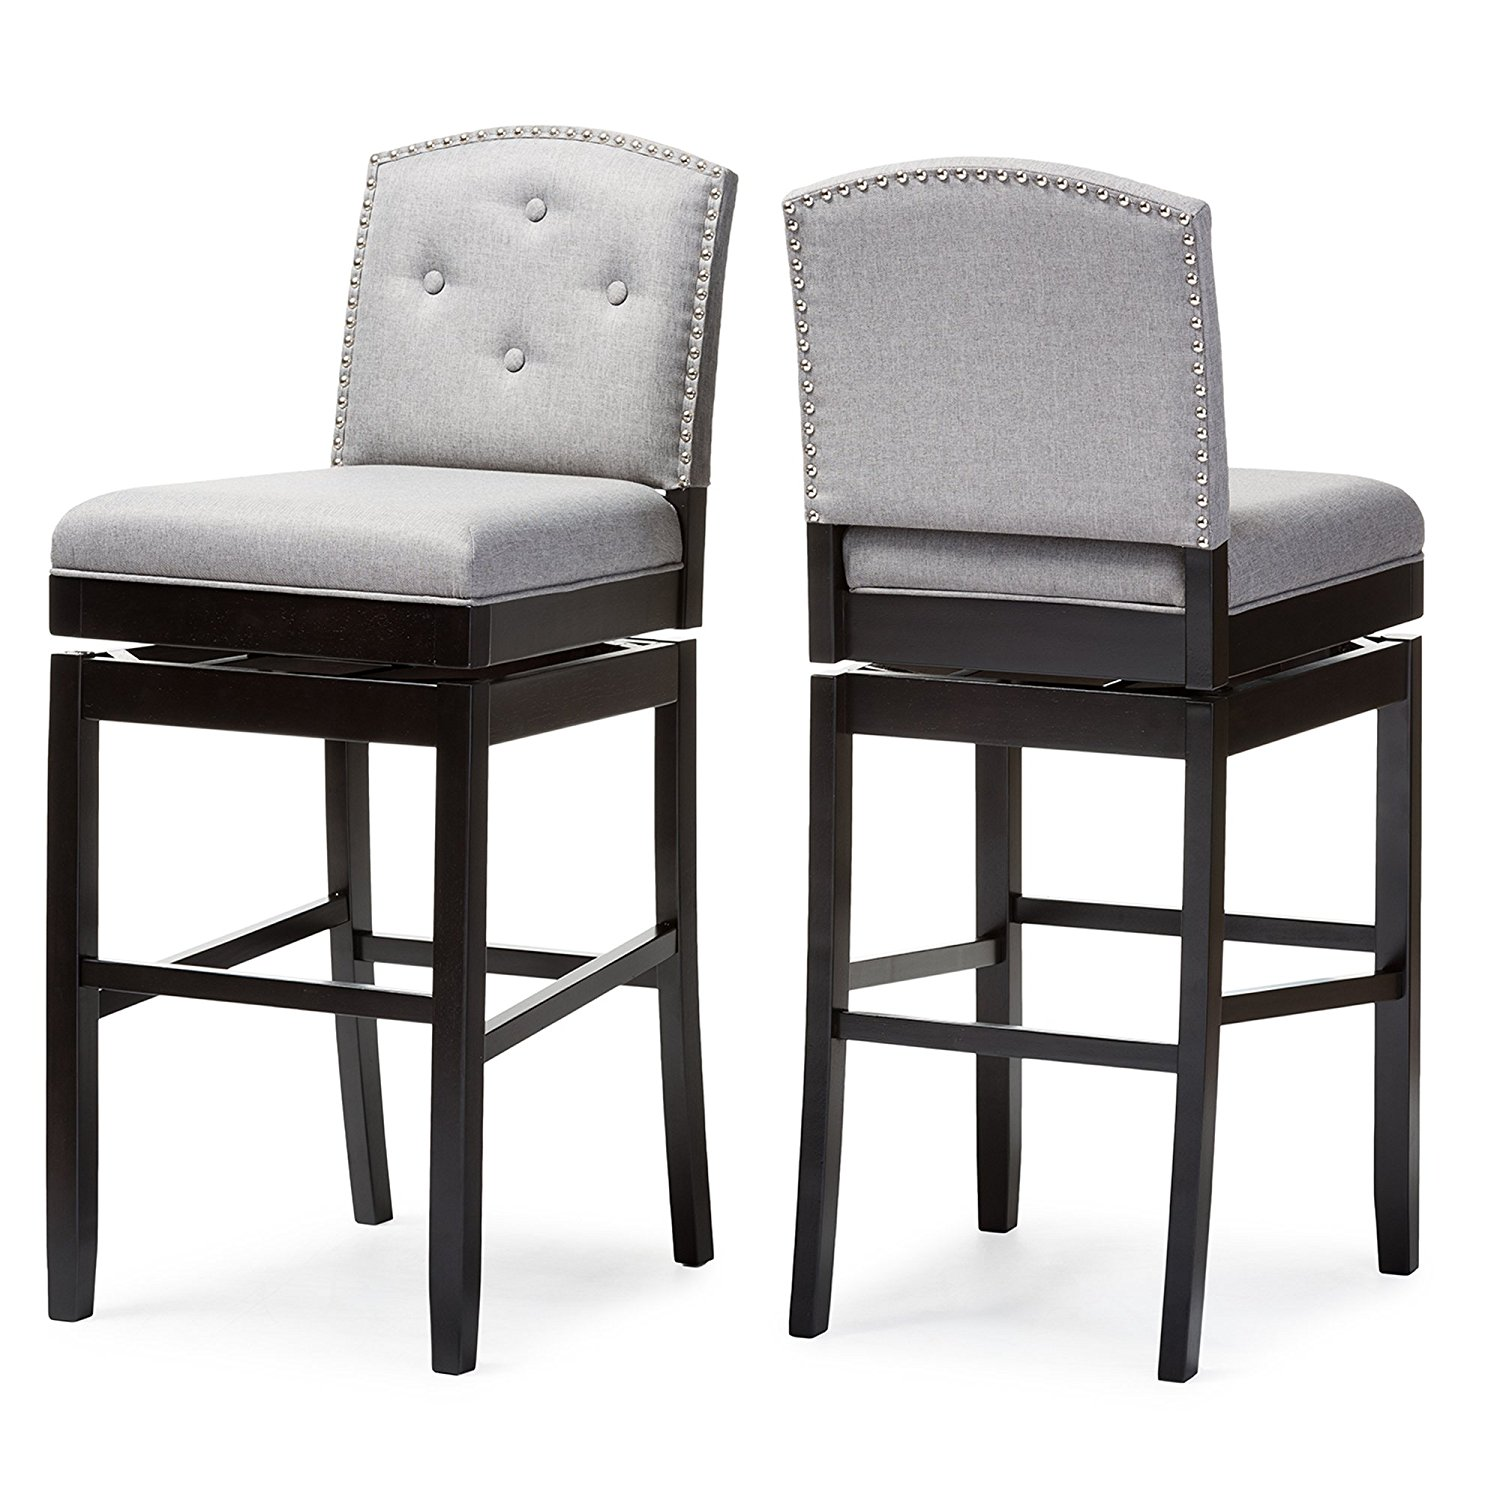 Modern Grey Bar Stools.Details About Baxton Studio Ginaro Set Of 2 Button Tufted Upholstered Swivel Bar Stool In Grey